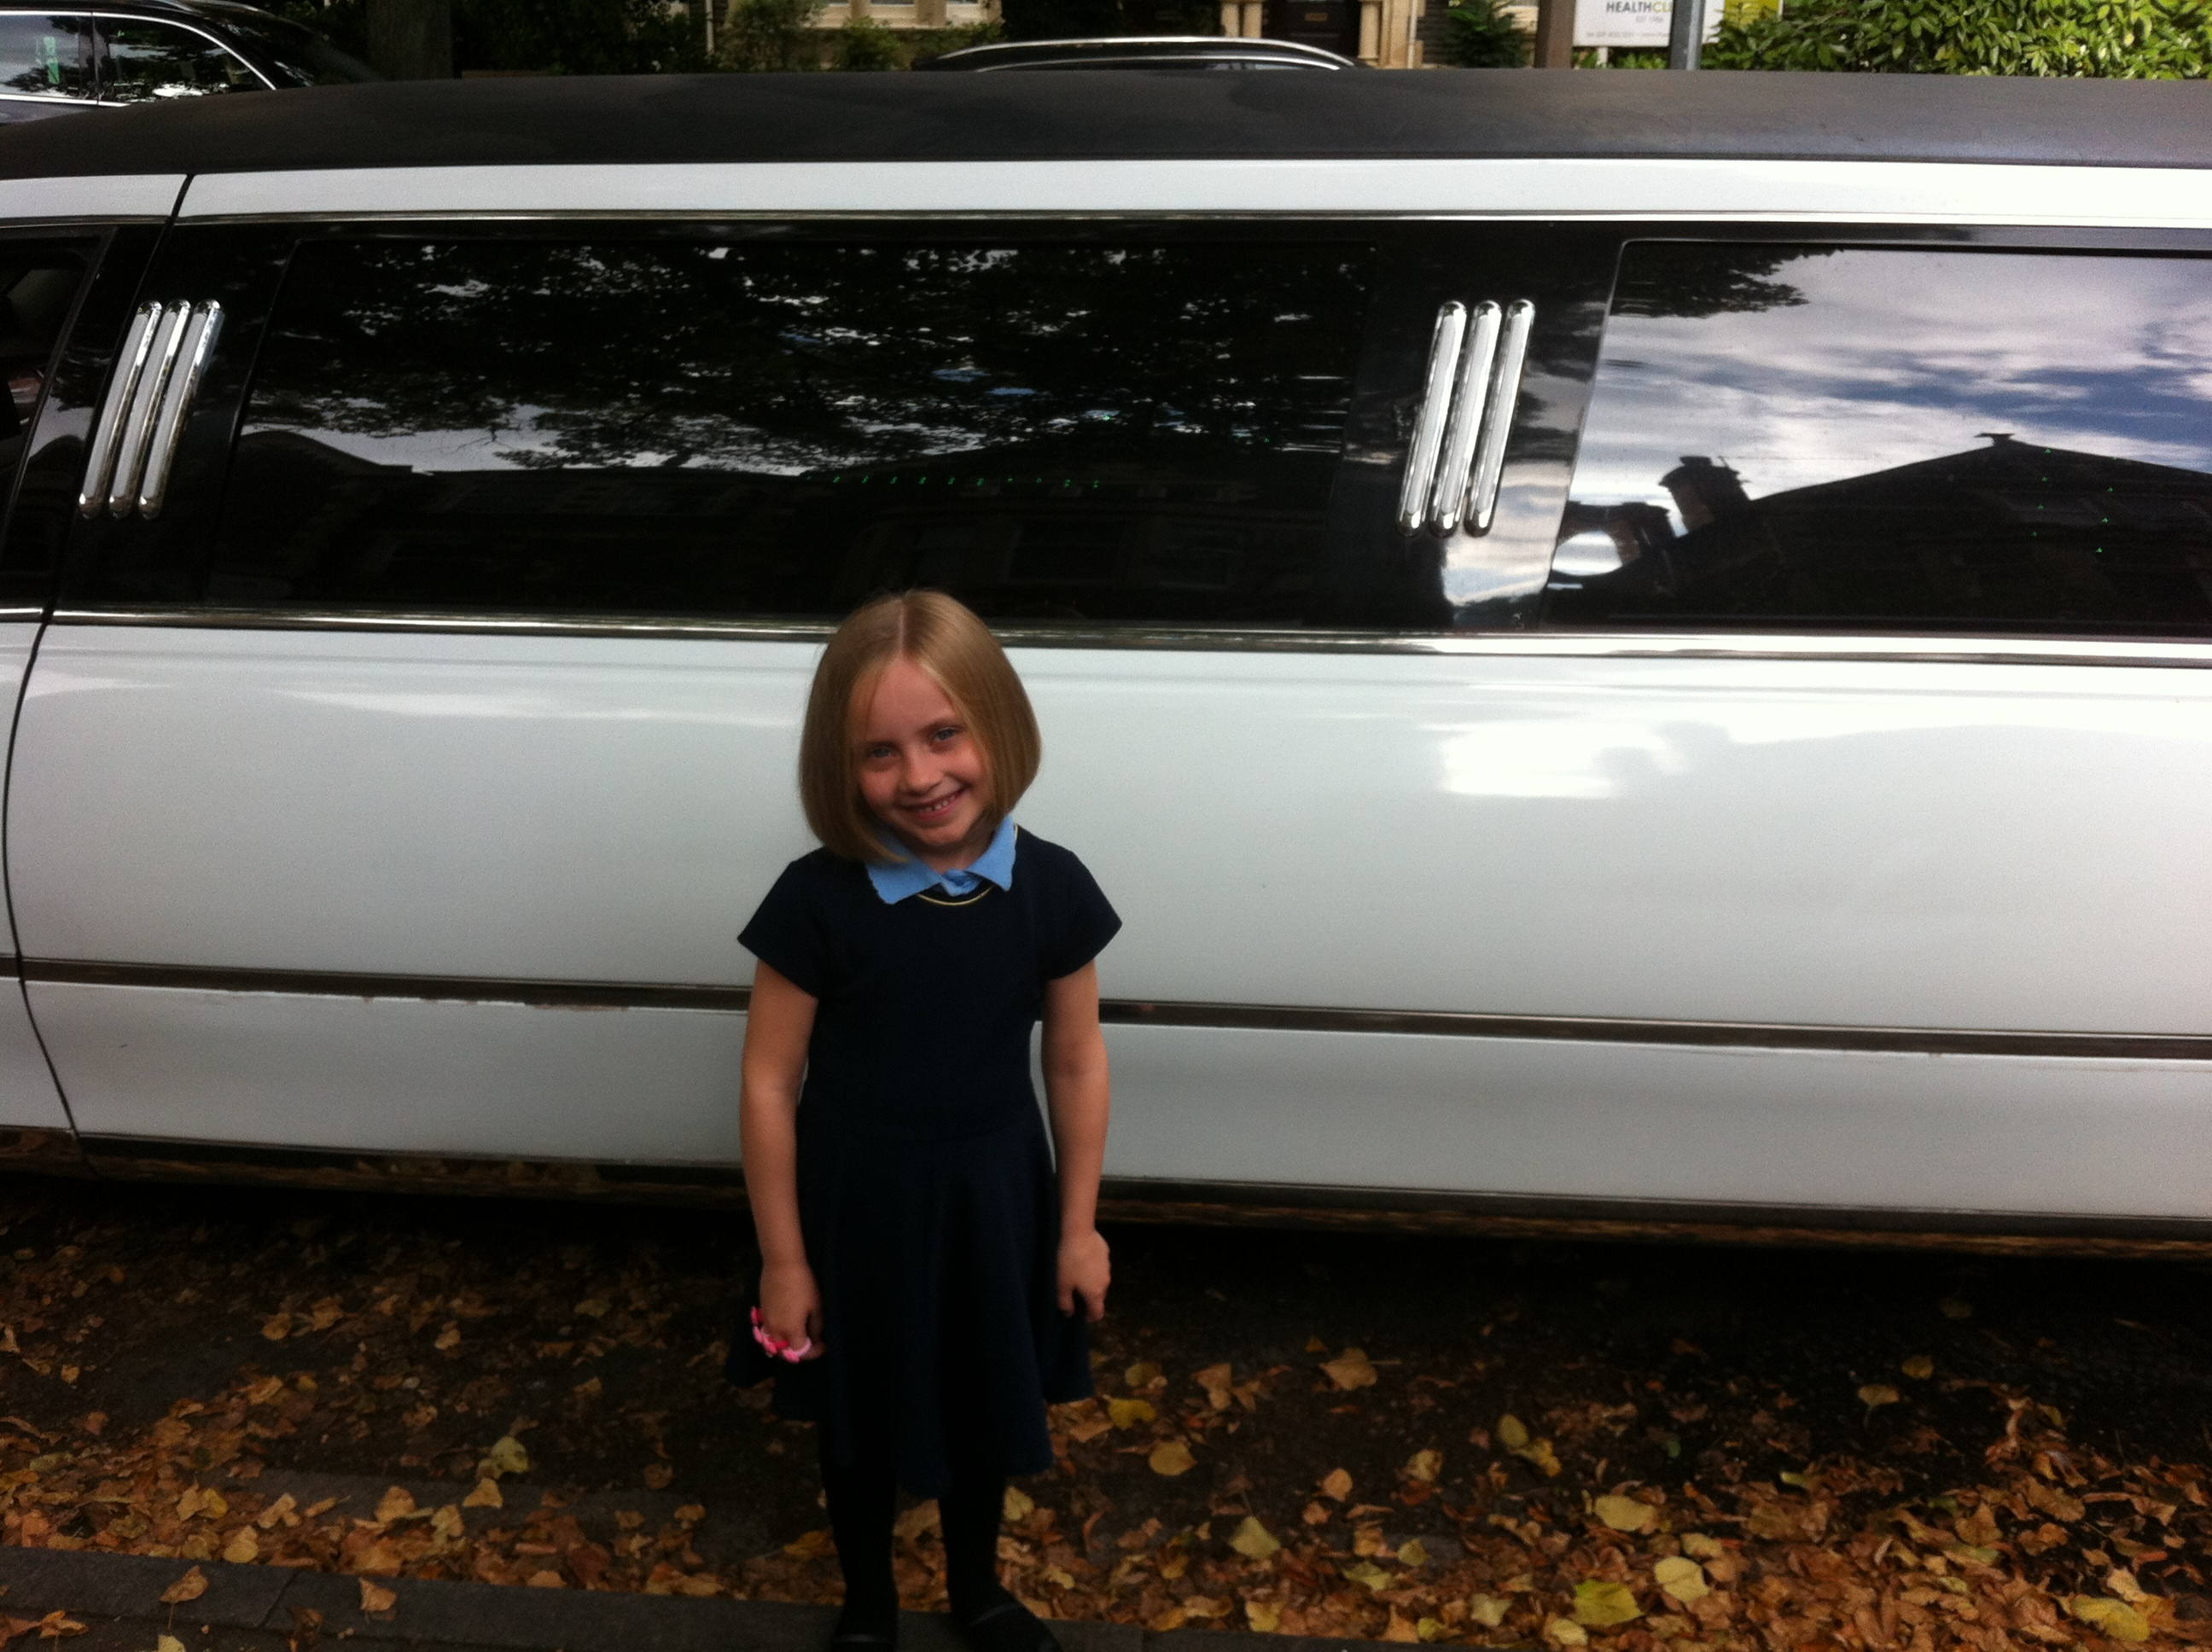 5-Year-Old Girl Enjoys Limo Ride After Donating Her Hair to the Little Princess Trust